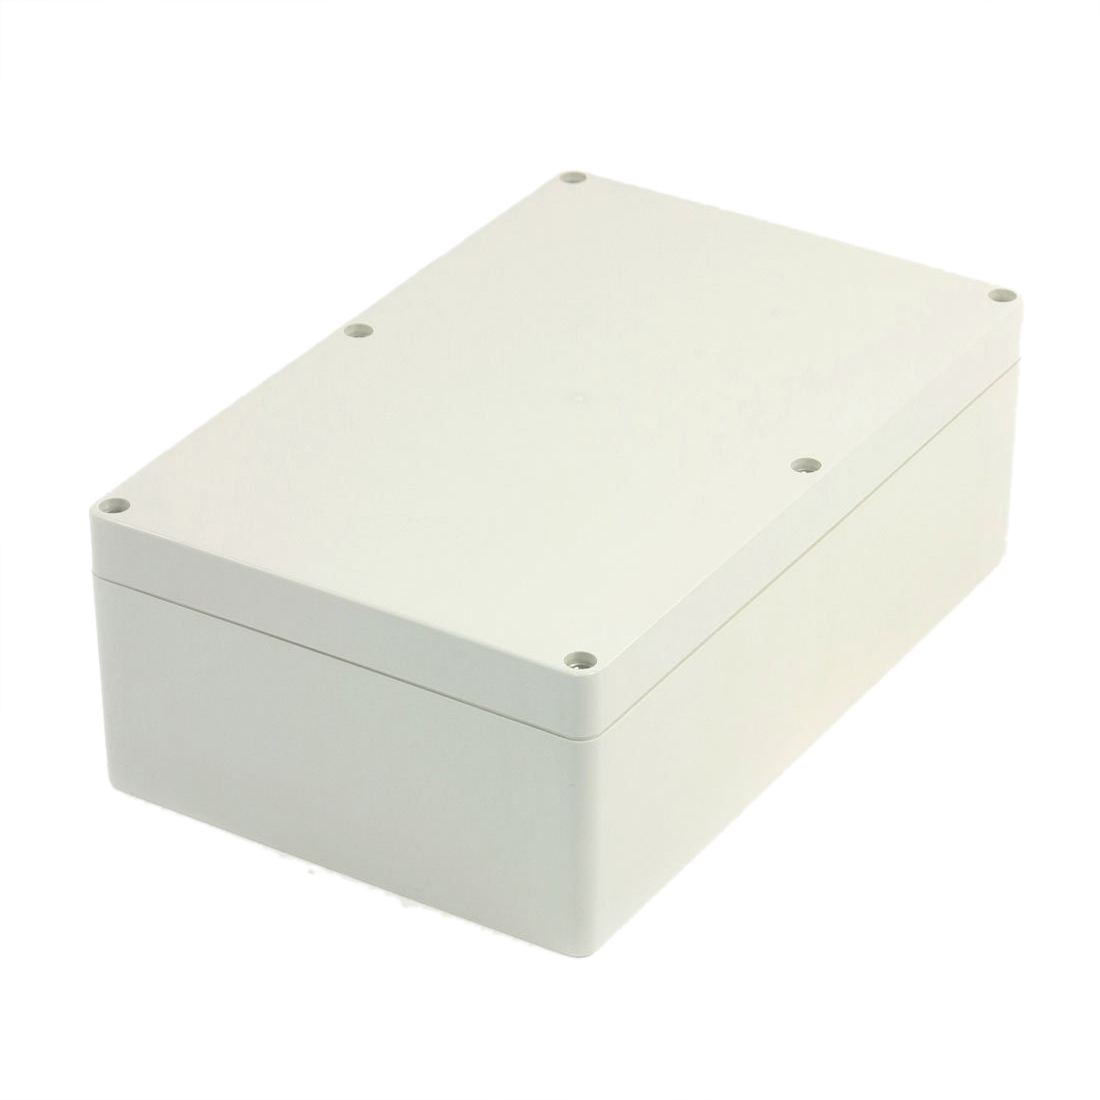 Wholesale Junction Box 230mmx150mmx85mm Waterproof Plastic Enclosure Case DIY Outdoor Electrical Connection box Cable Branch box ip65 300x270x112mm waterproof junction box plastic project box electrical connector terminal outdoor enclosure box wall mounting